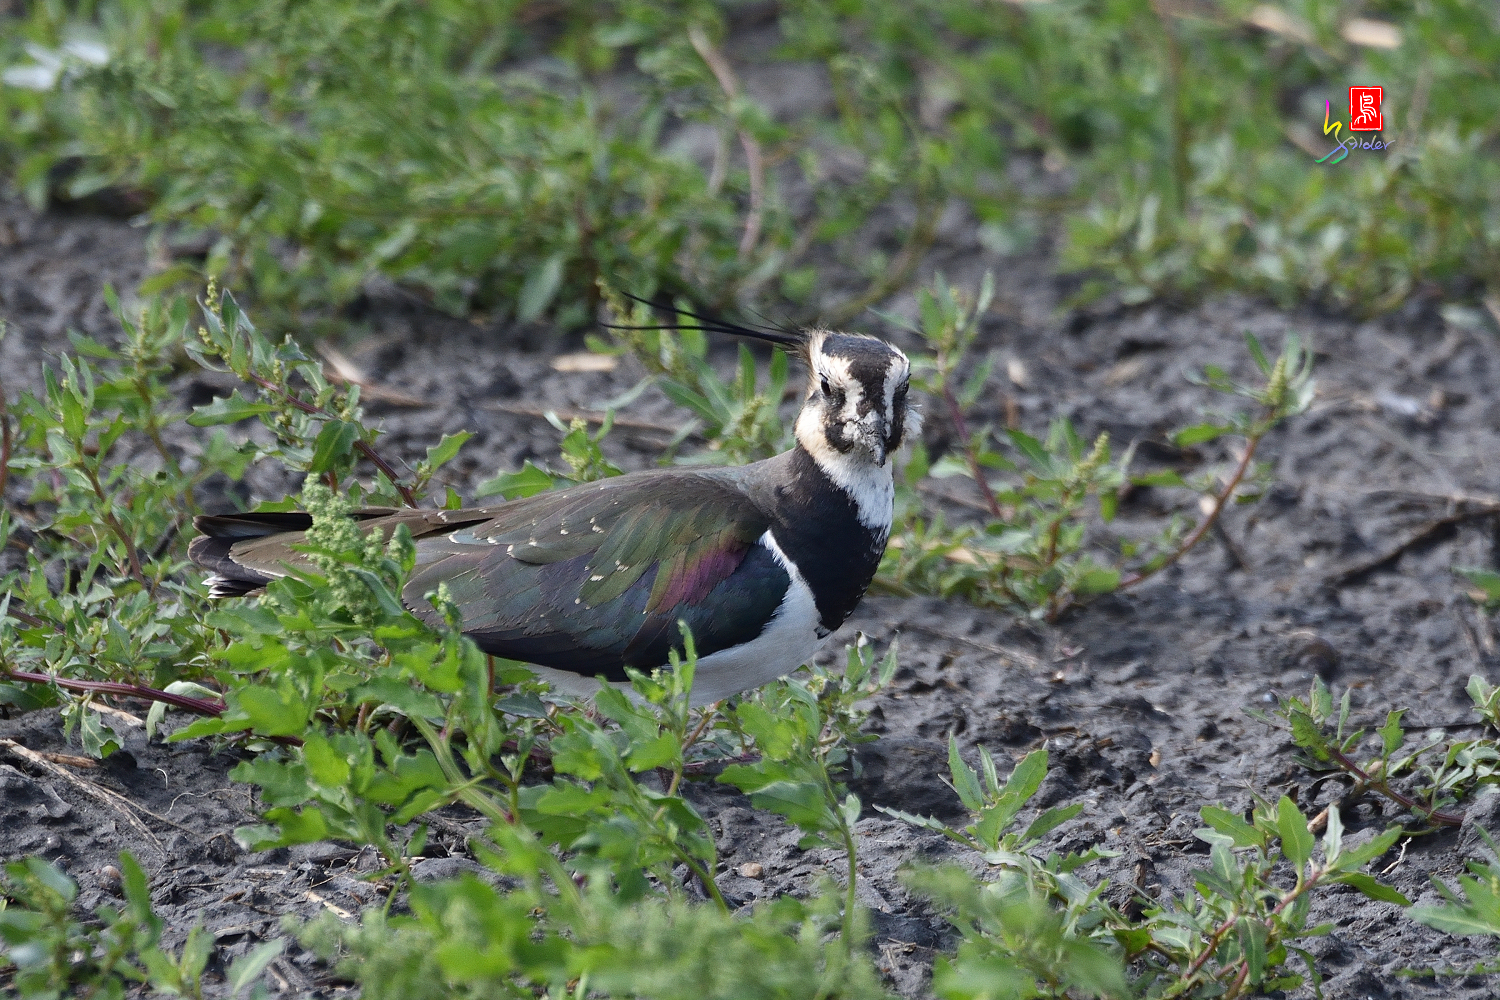 Nprthern_Lapwing_7203